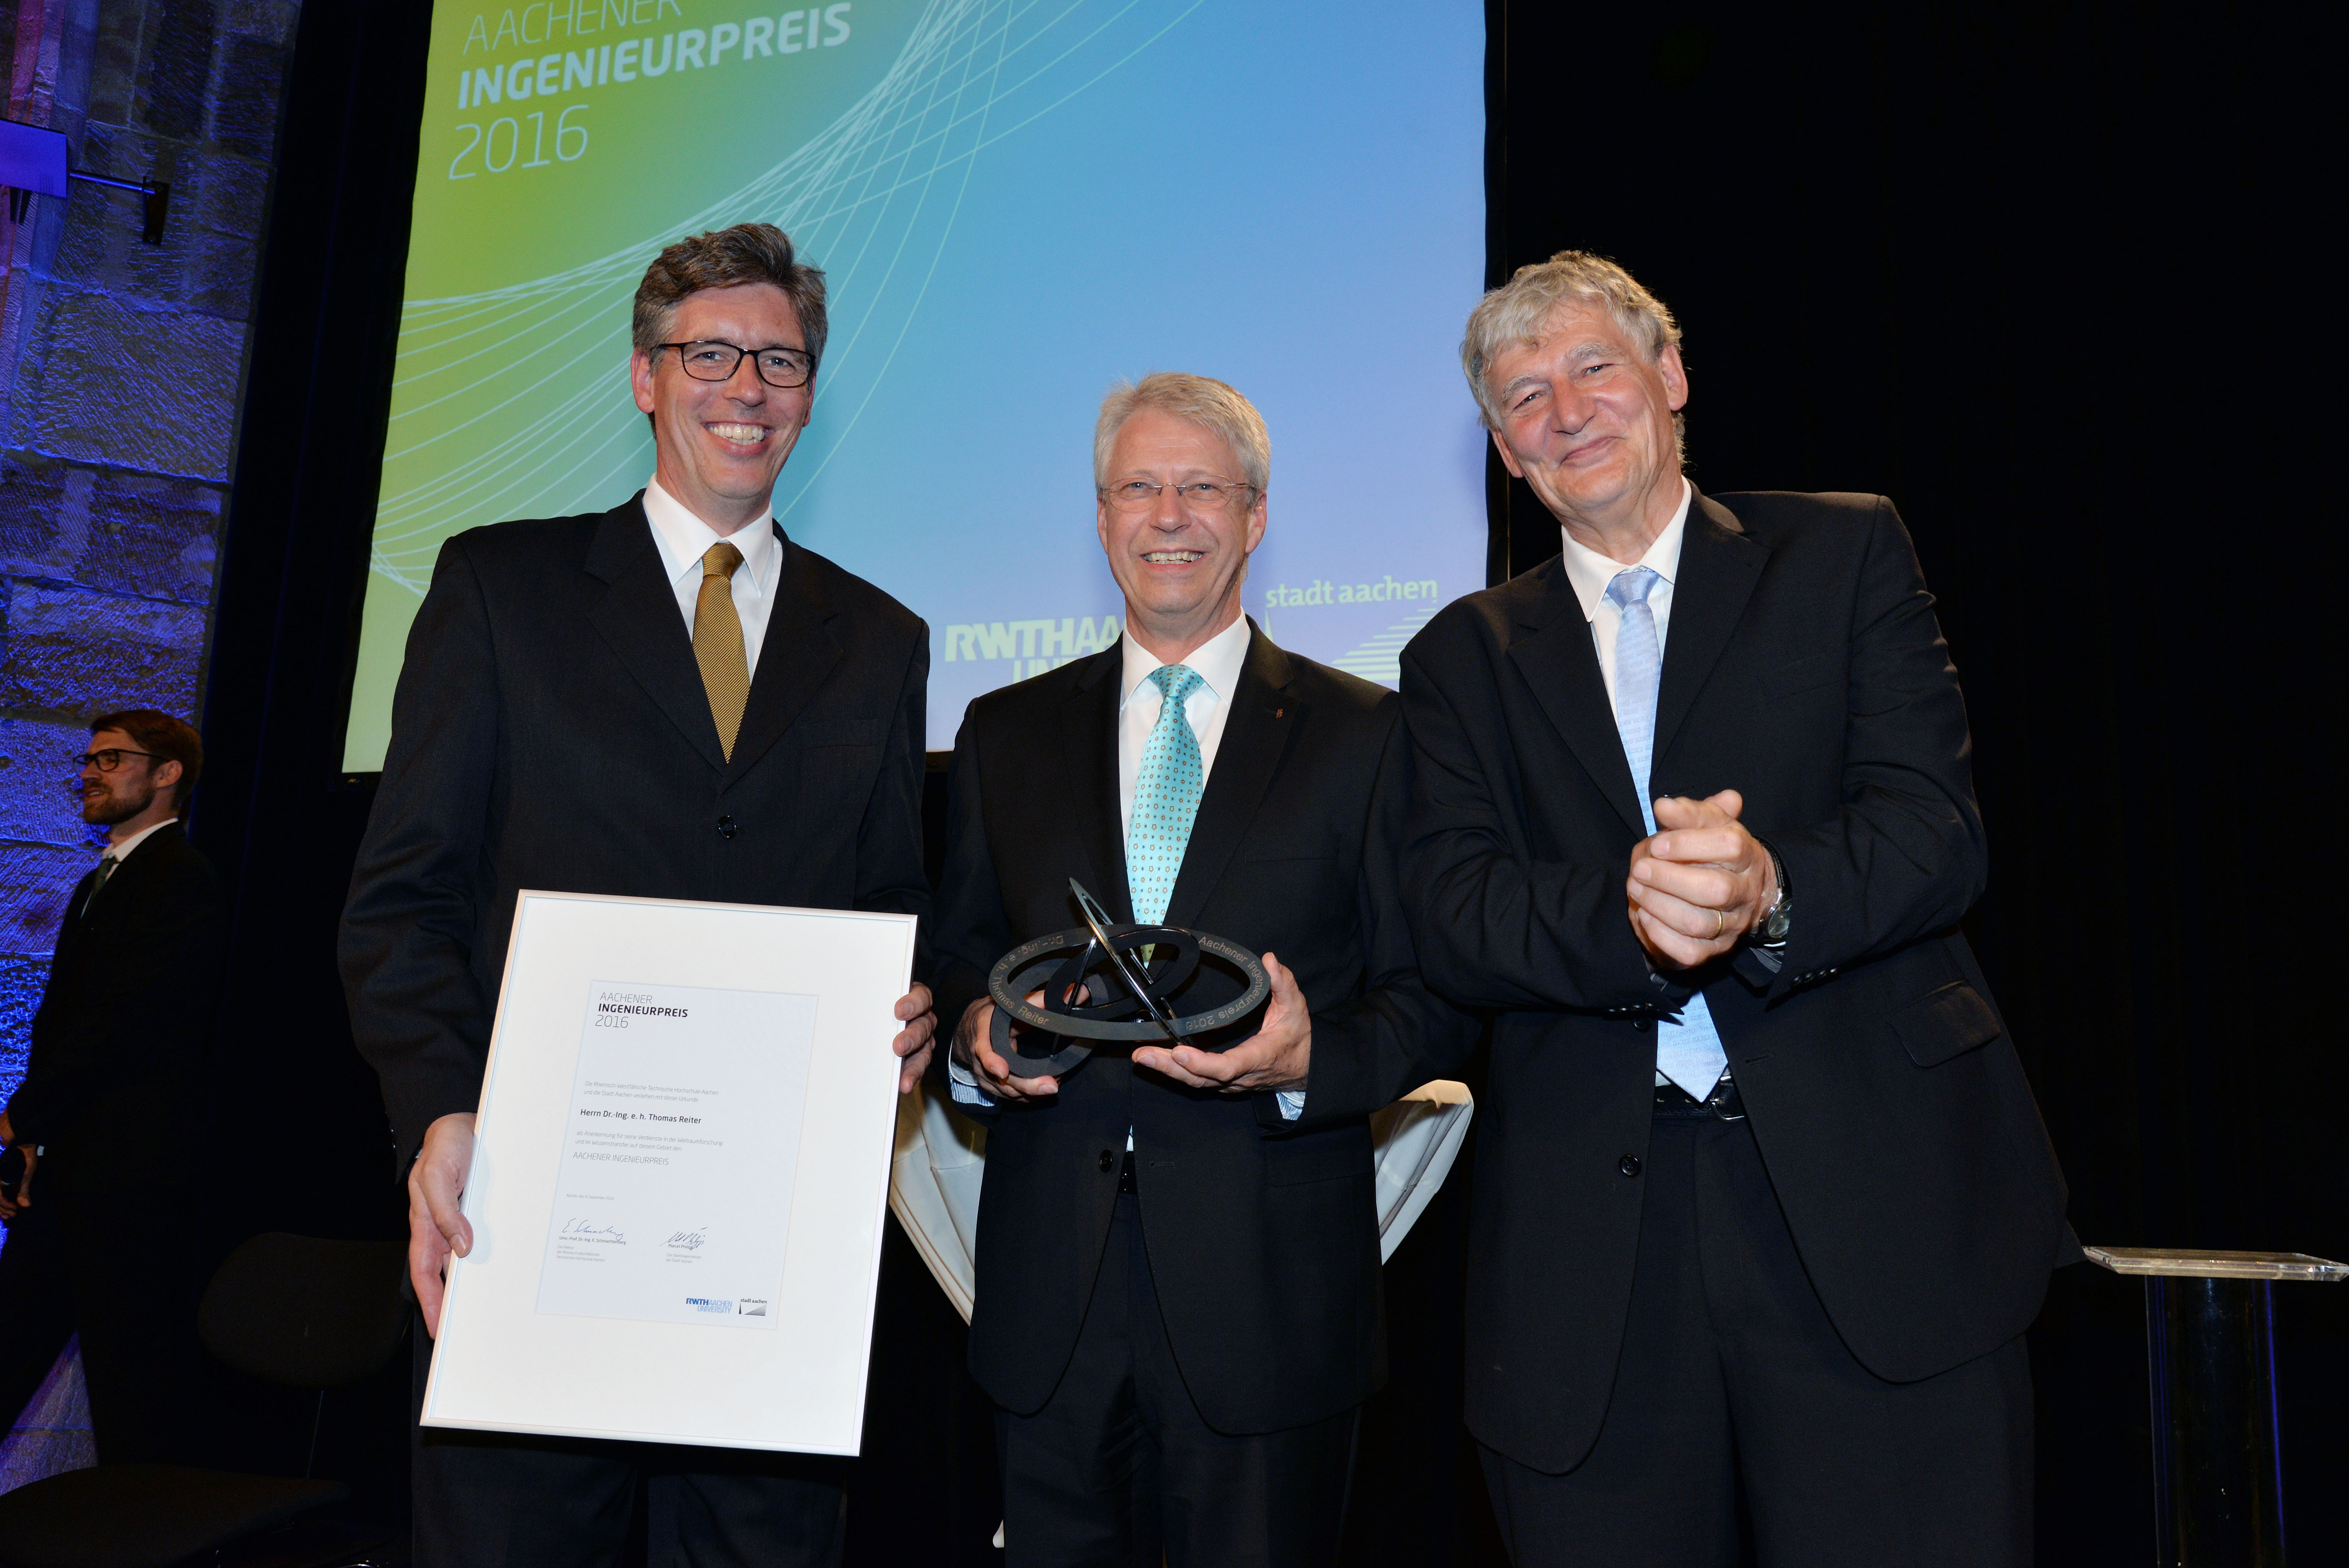 Aachen Engineering Award 2016